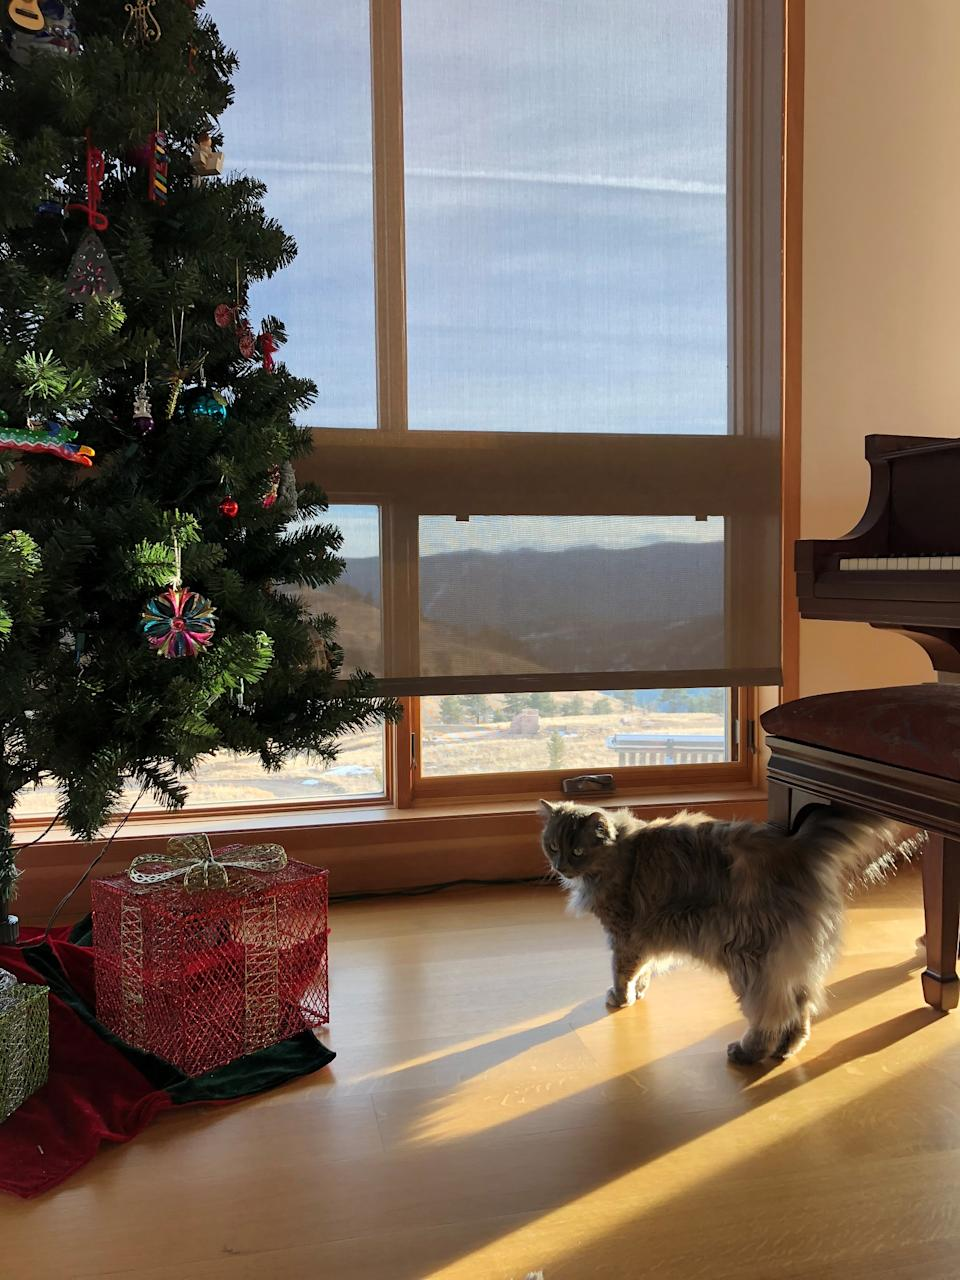 Madolline has managed to spend Christmas in far-flung locations for free, in exchange for keeping some furry friends company. Photo: Madolline Gourley